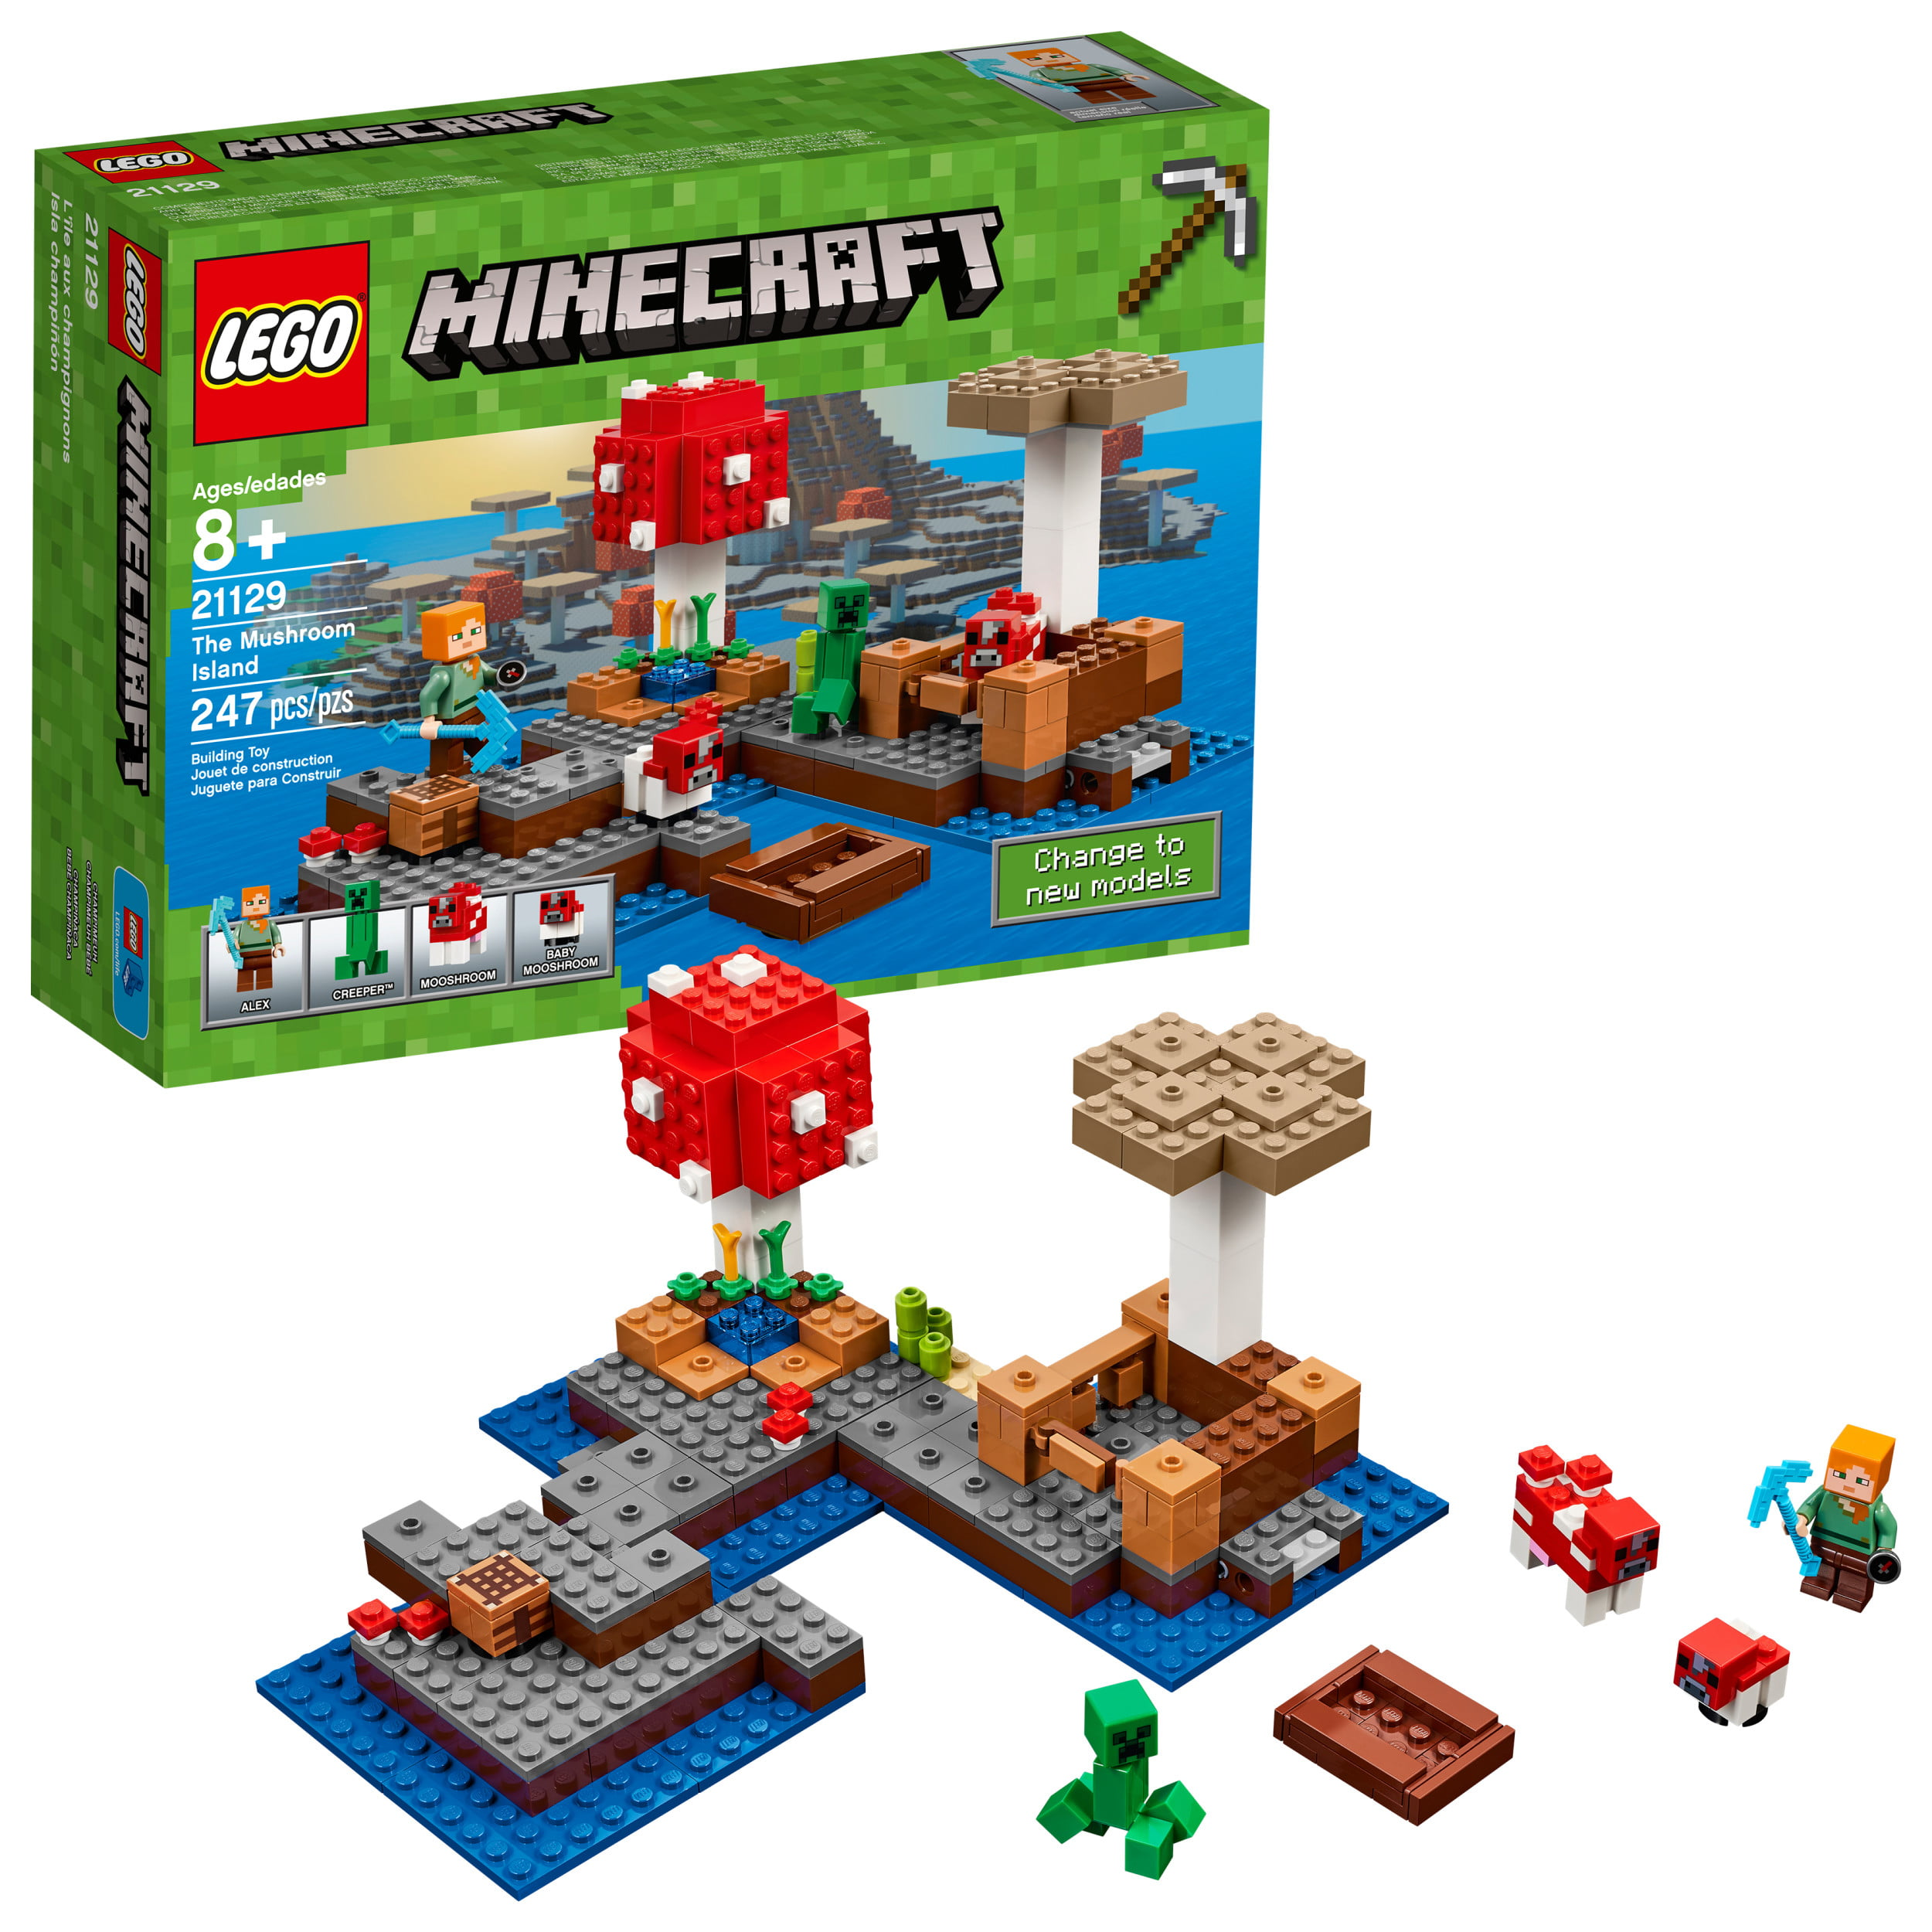 Lego Minecraft The Mushroom Island (21129) by LEGO Systems Inc